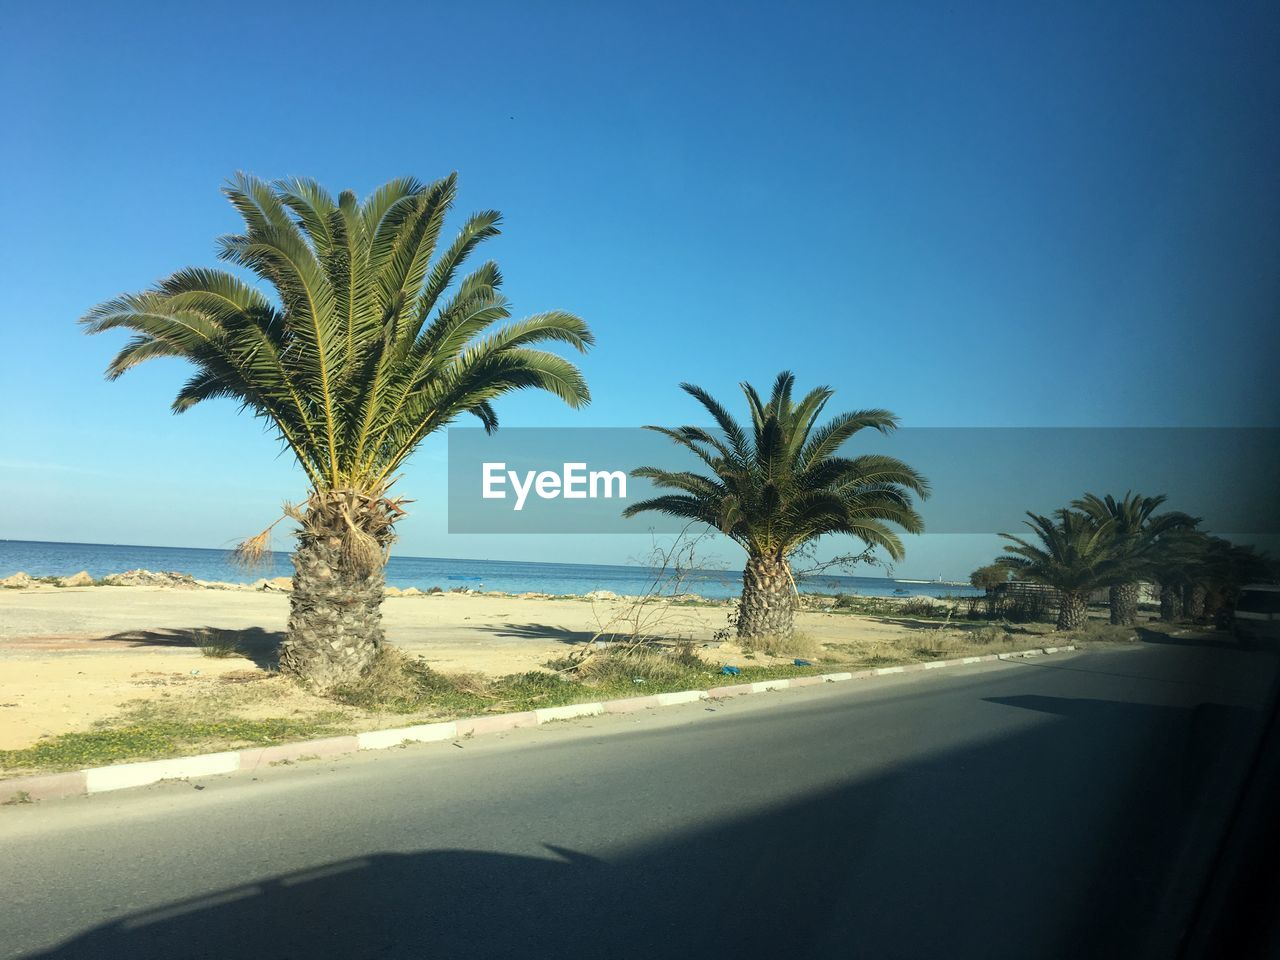 Palm trees by road seen through car window against blue sky